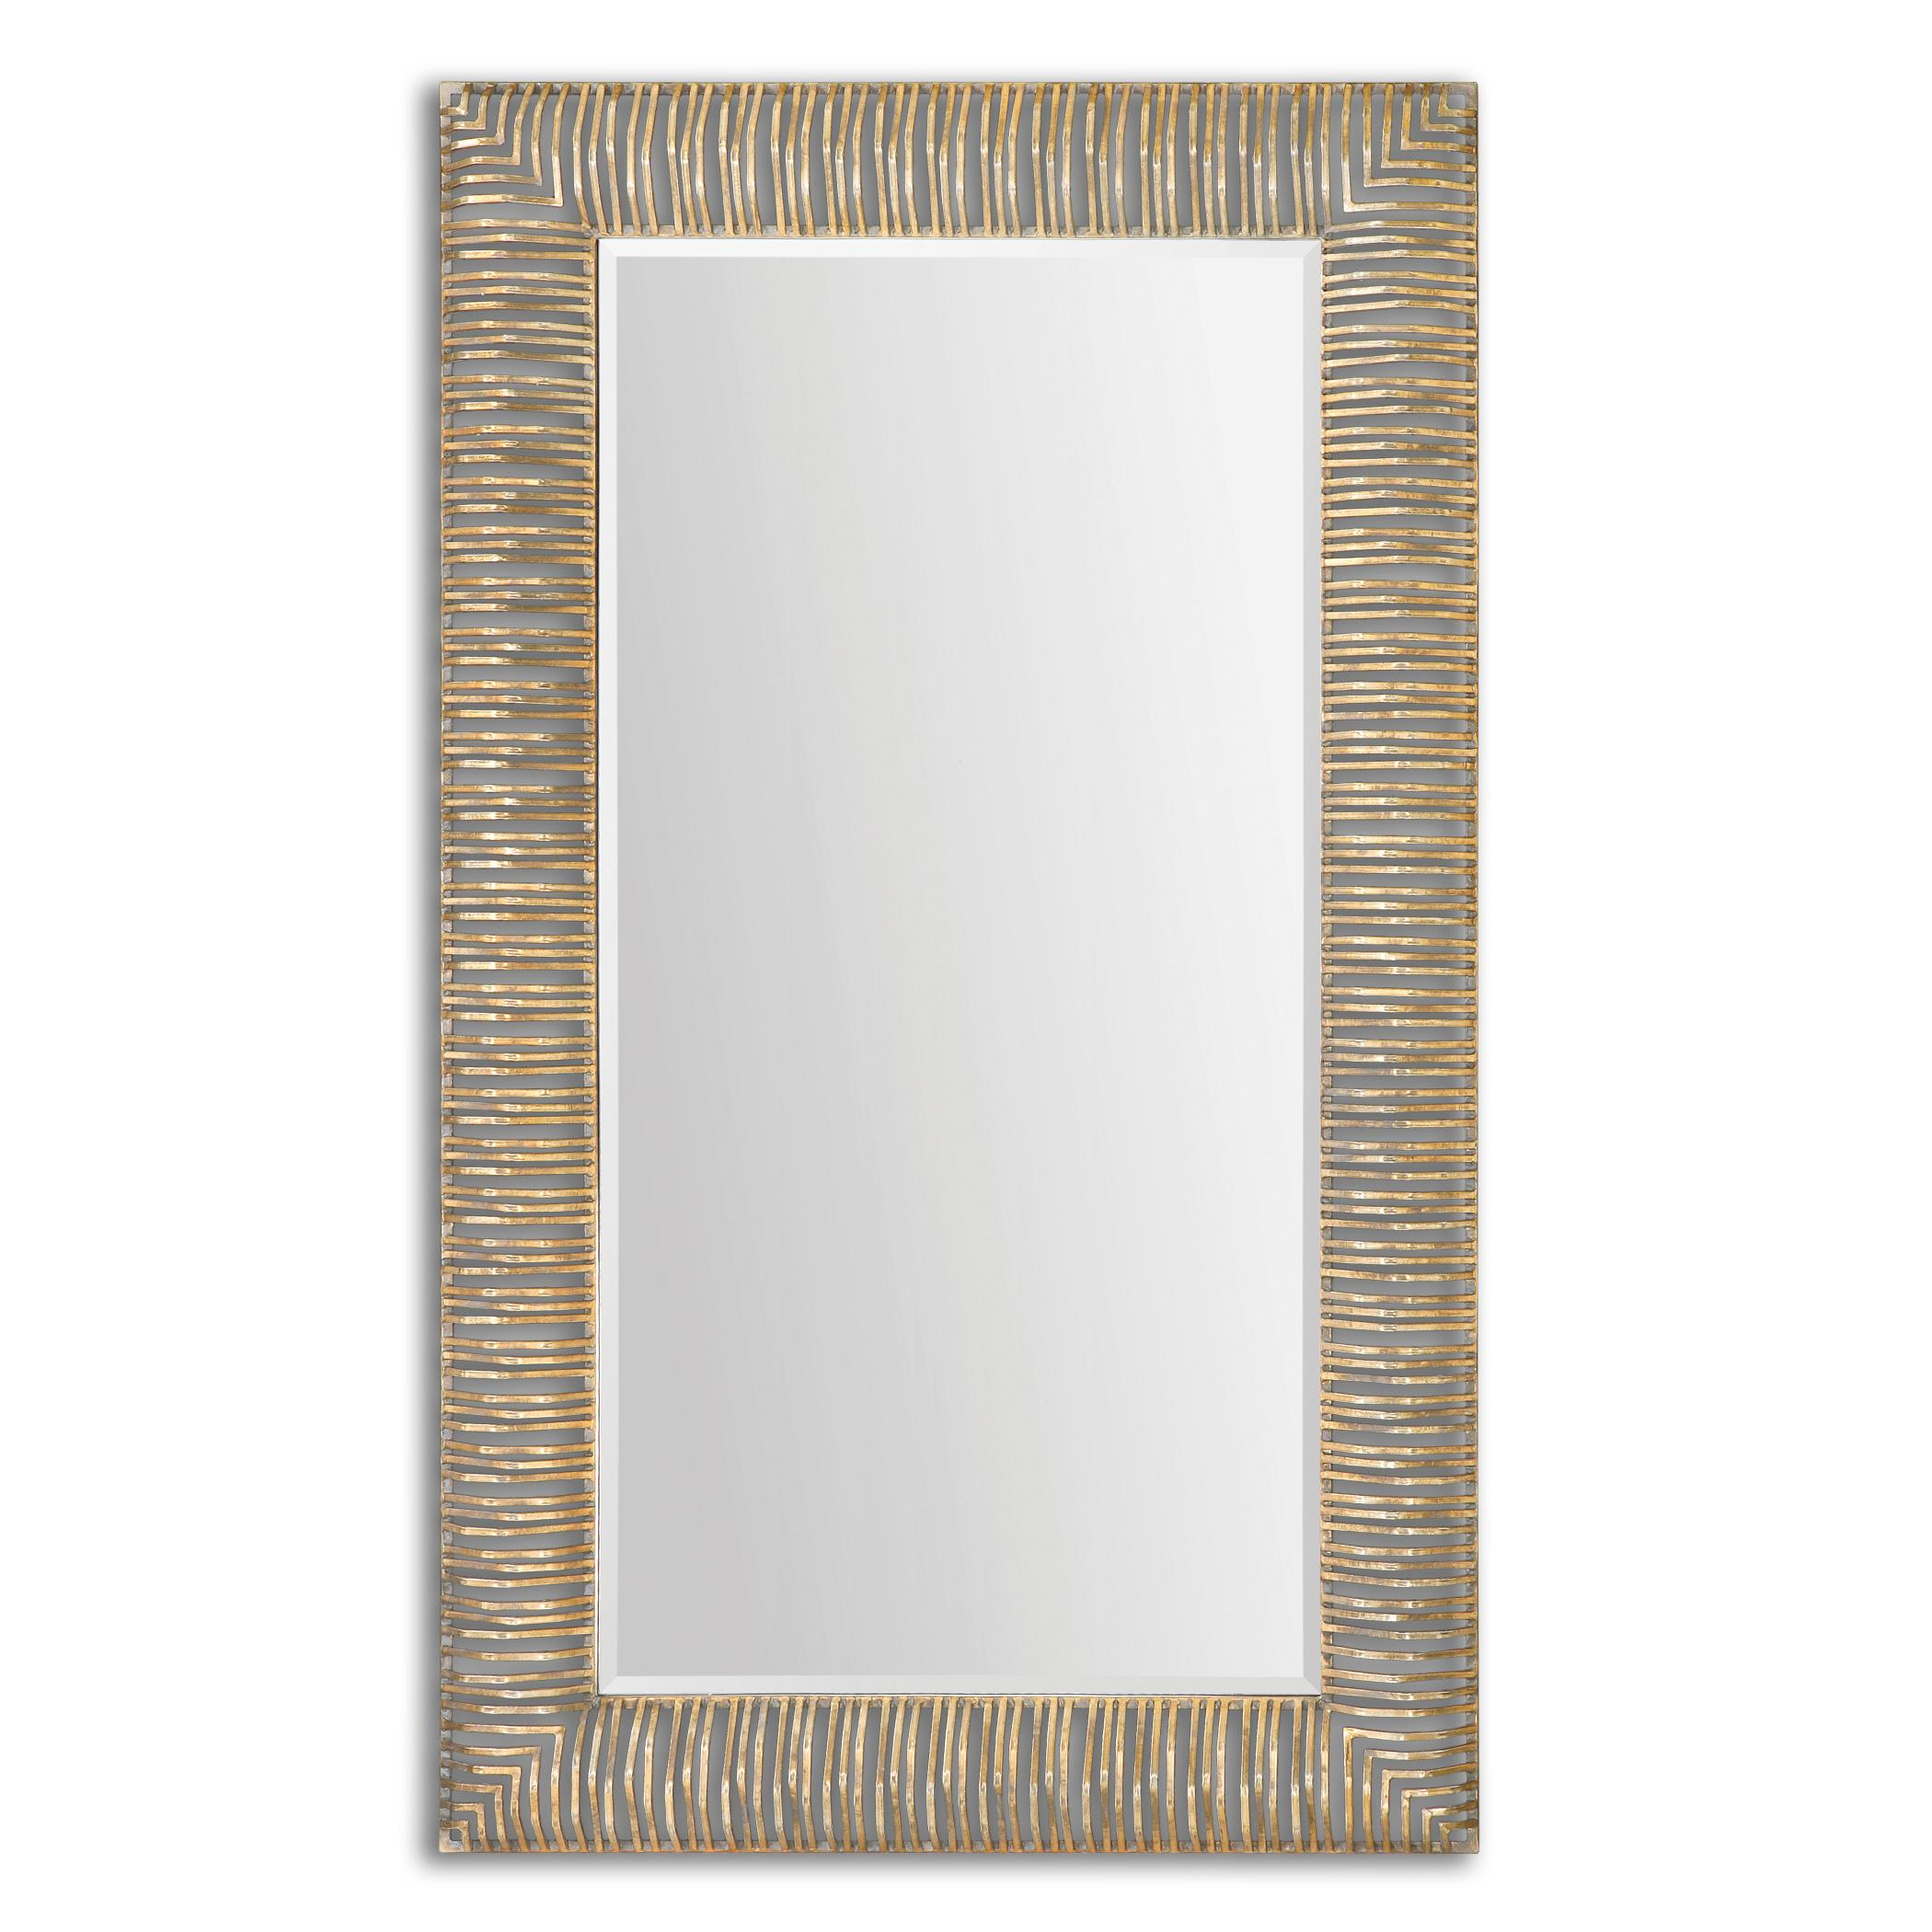 Uttermost Mirrors Aldric Oversized Gold Mirror - Item Number: 12890